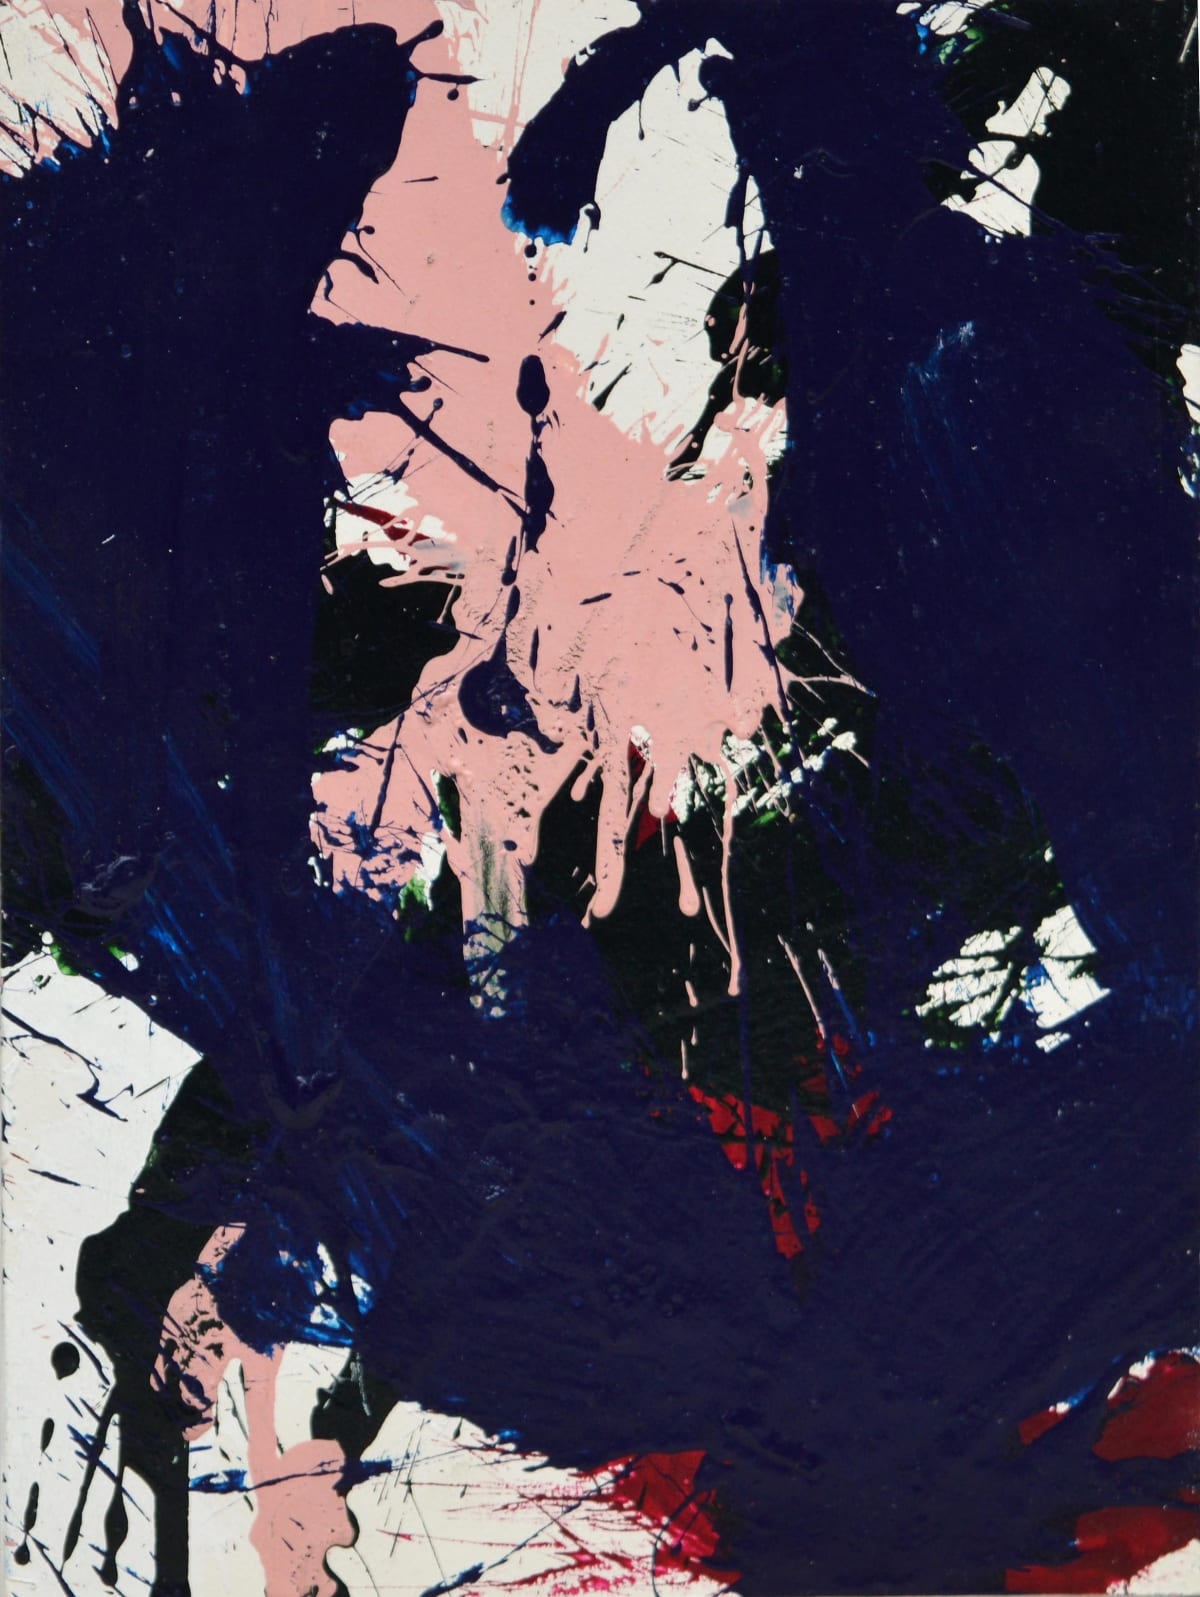 Norman Bluhm, Composition in blue and pink 4, 1967